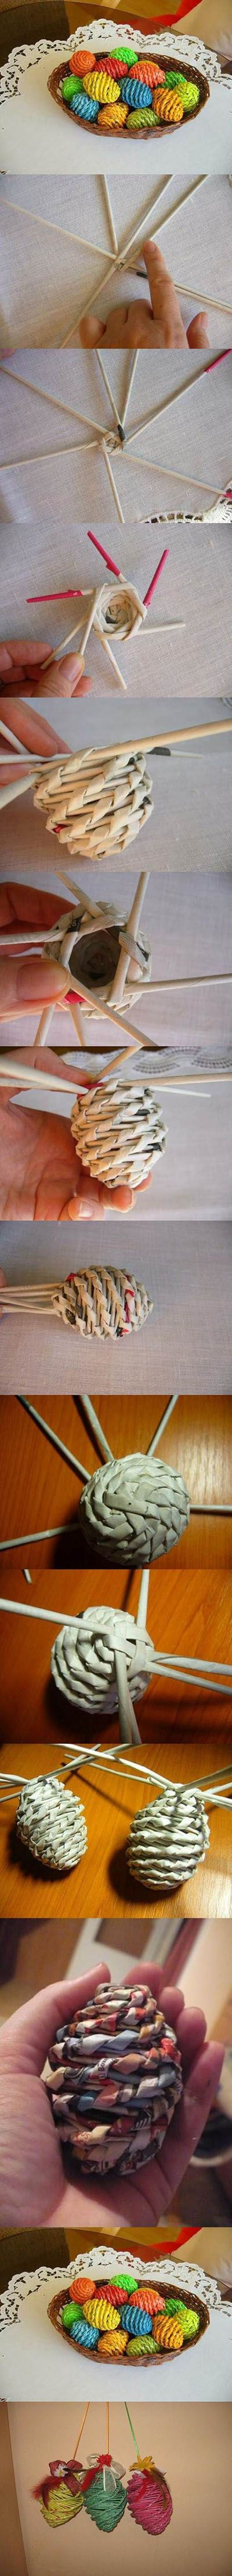 DIY Woven Paper Easter Eggs | DIY & Crafts Tutorials